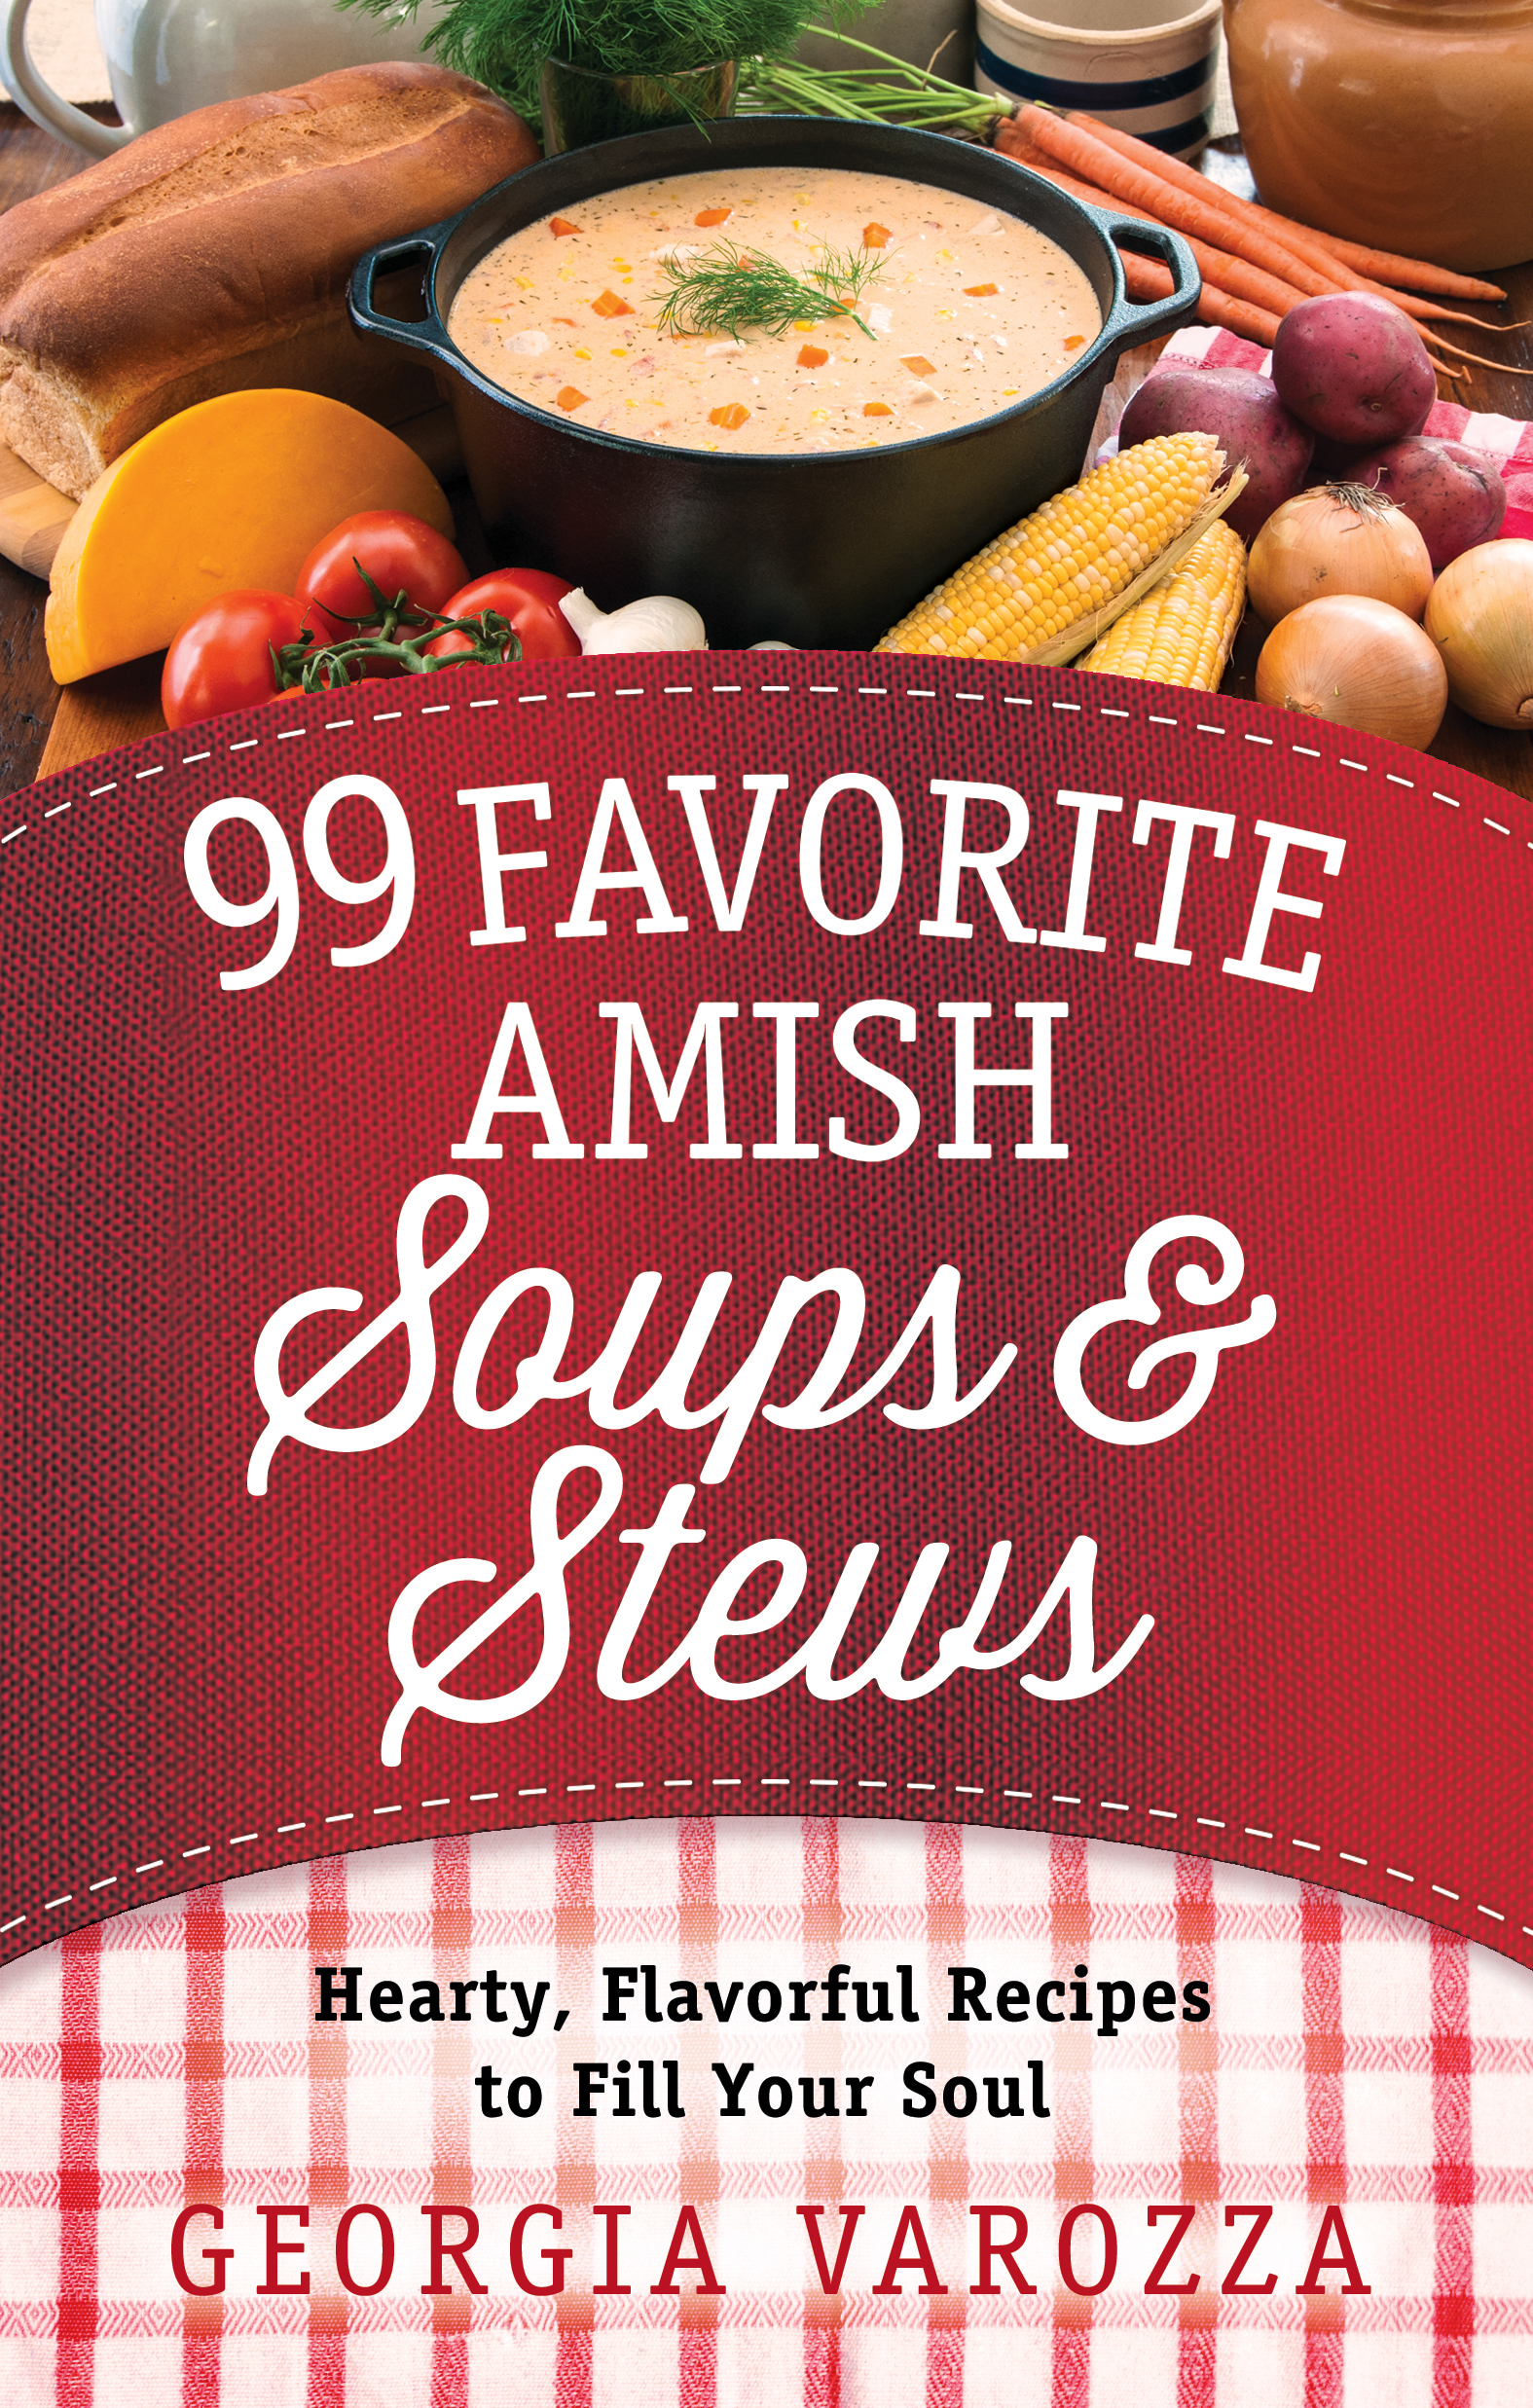 99 Favorite Amish Soups and Stews Hearty, Flavorful Recipes to Fill Your Soul